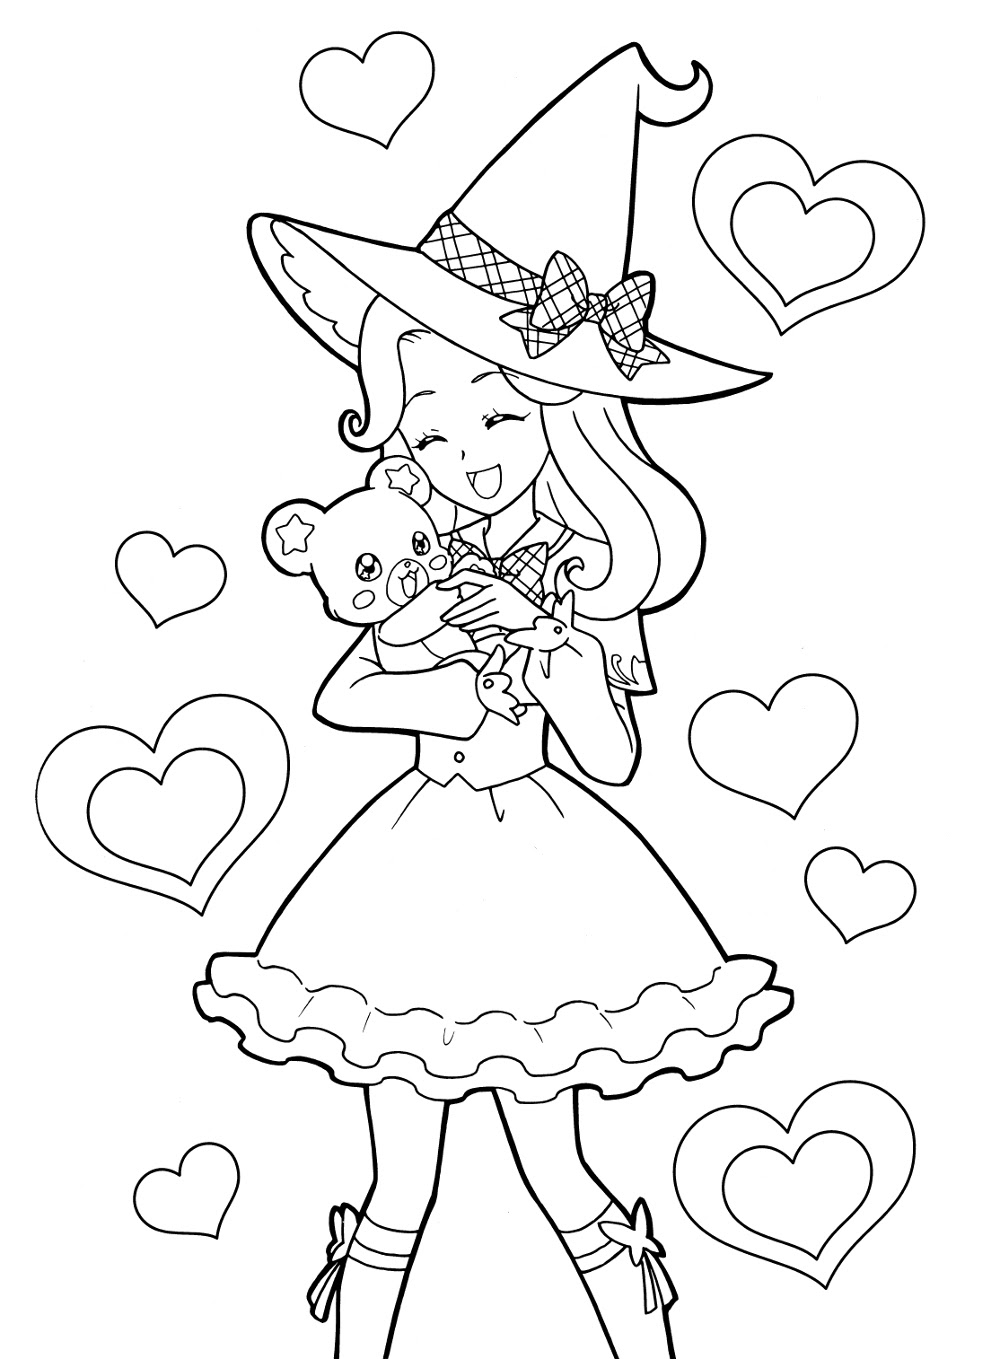 Anime Love Coloring Pages at GetColorings.com | Free ...